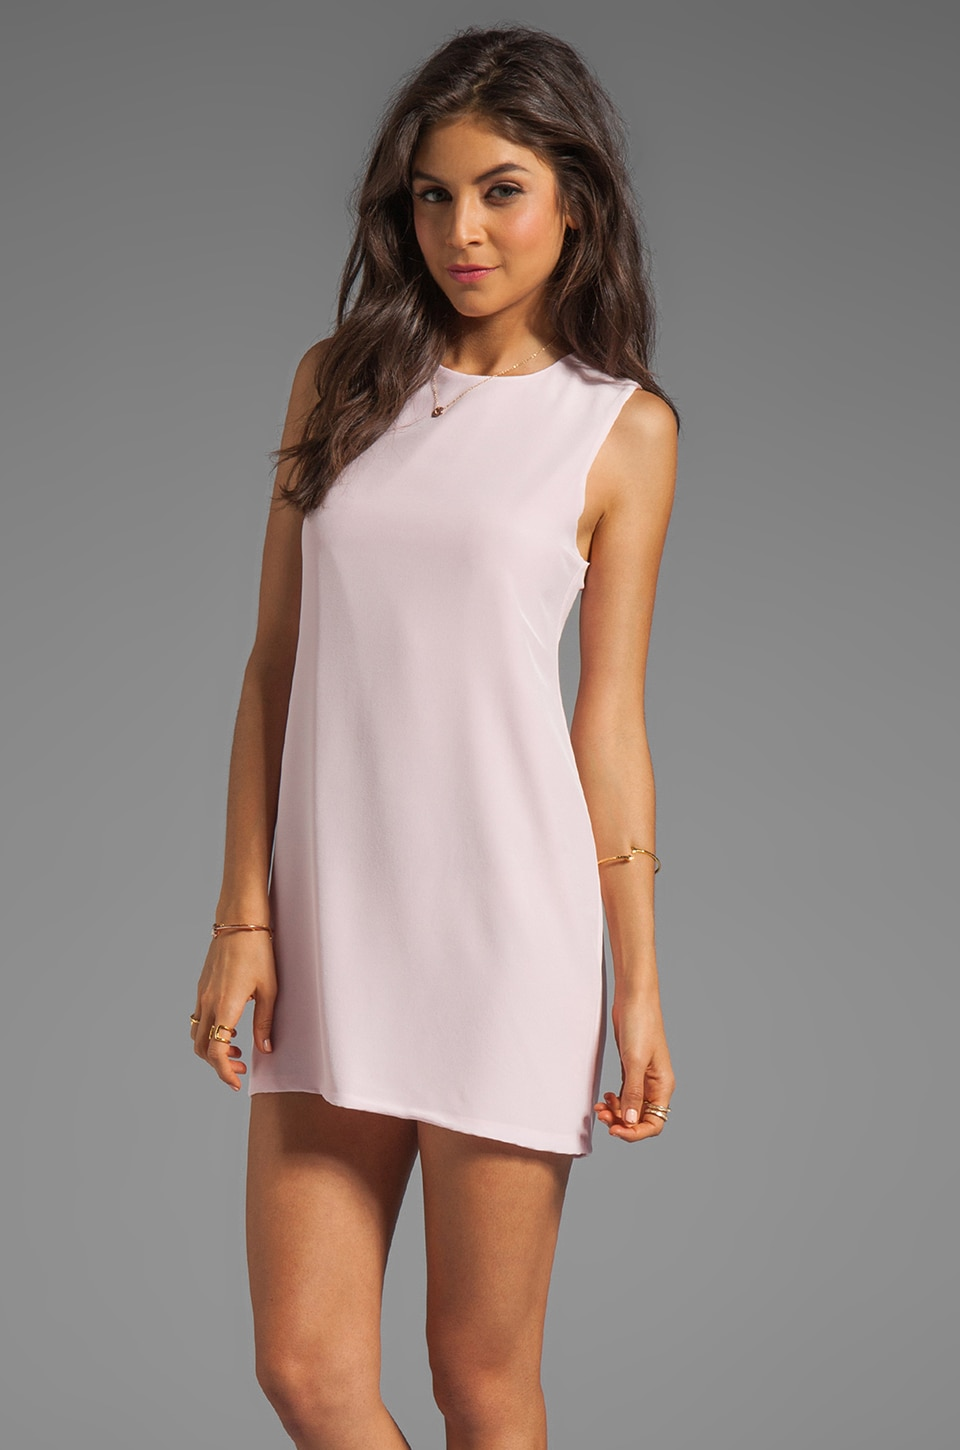 Naven Designer Twiggy Dress in Rose Quartz